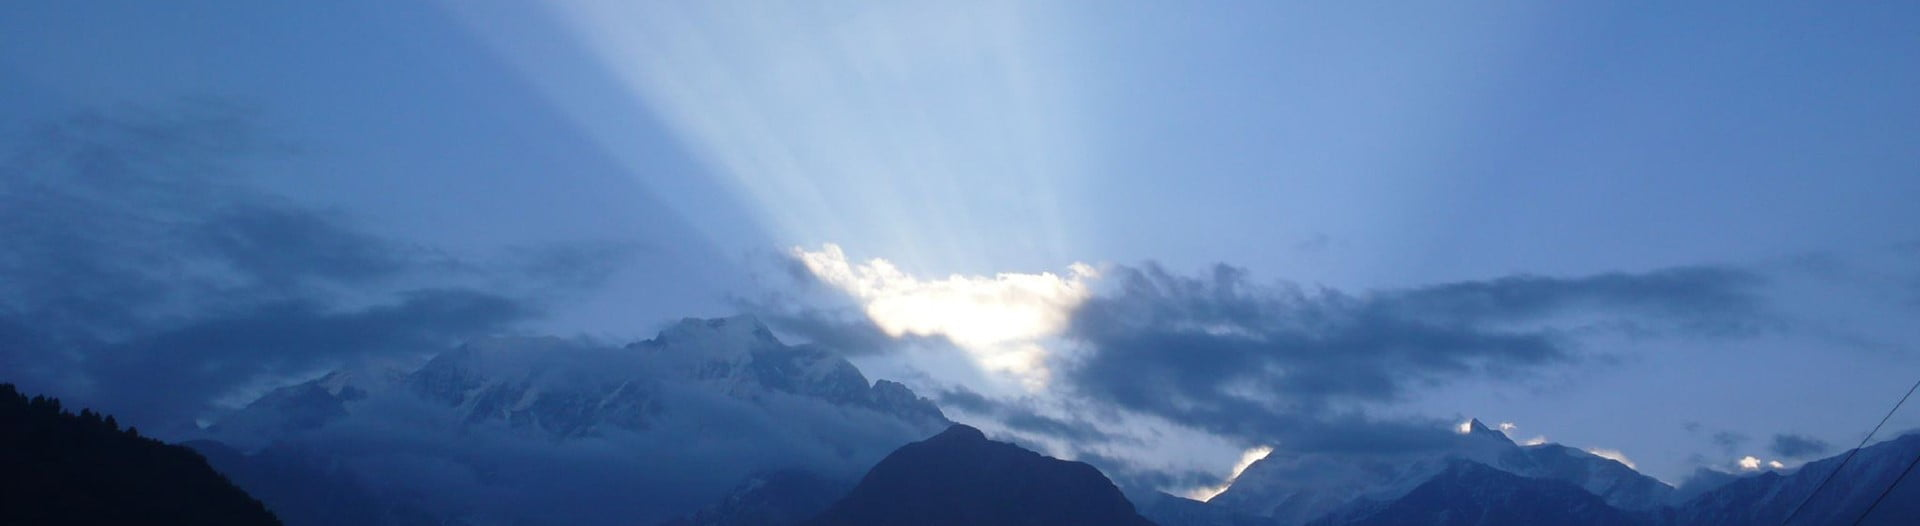 Mountains in the Himalaya